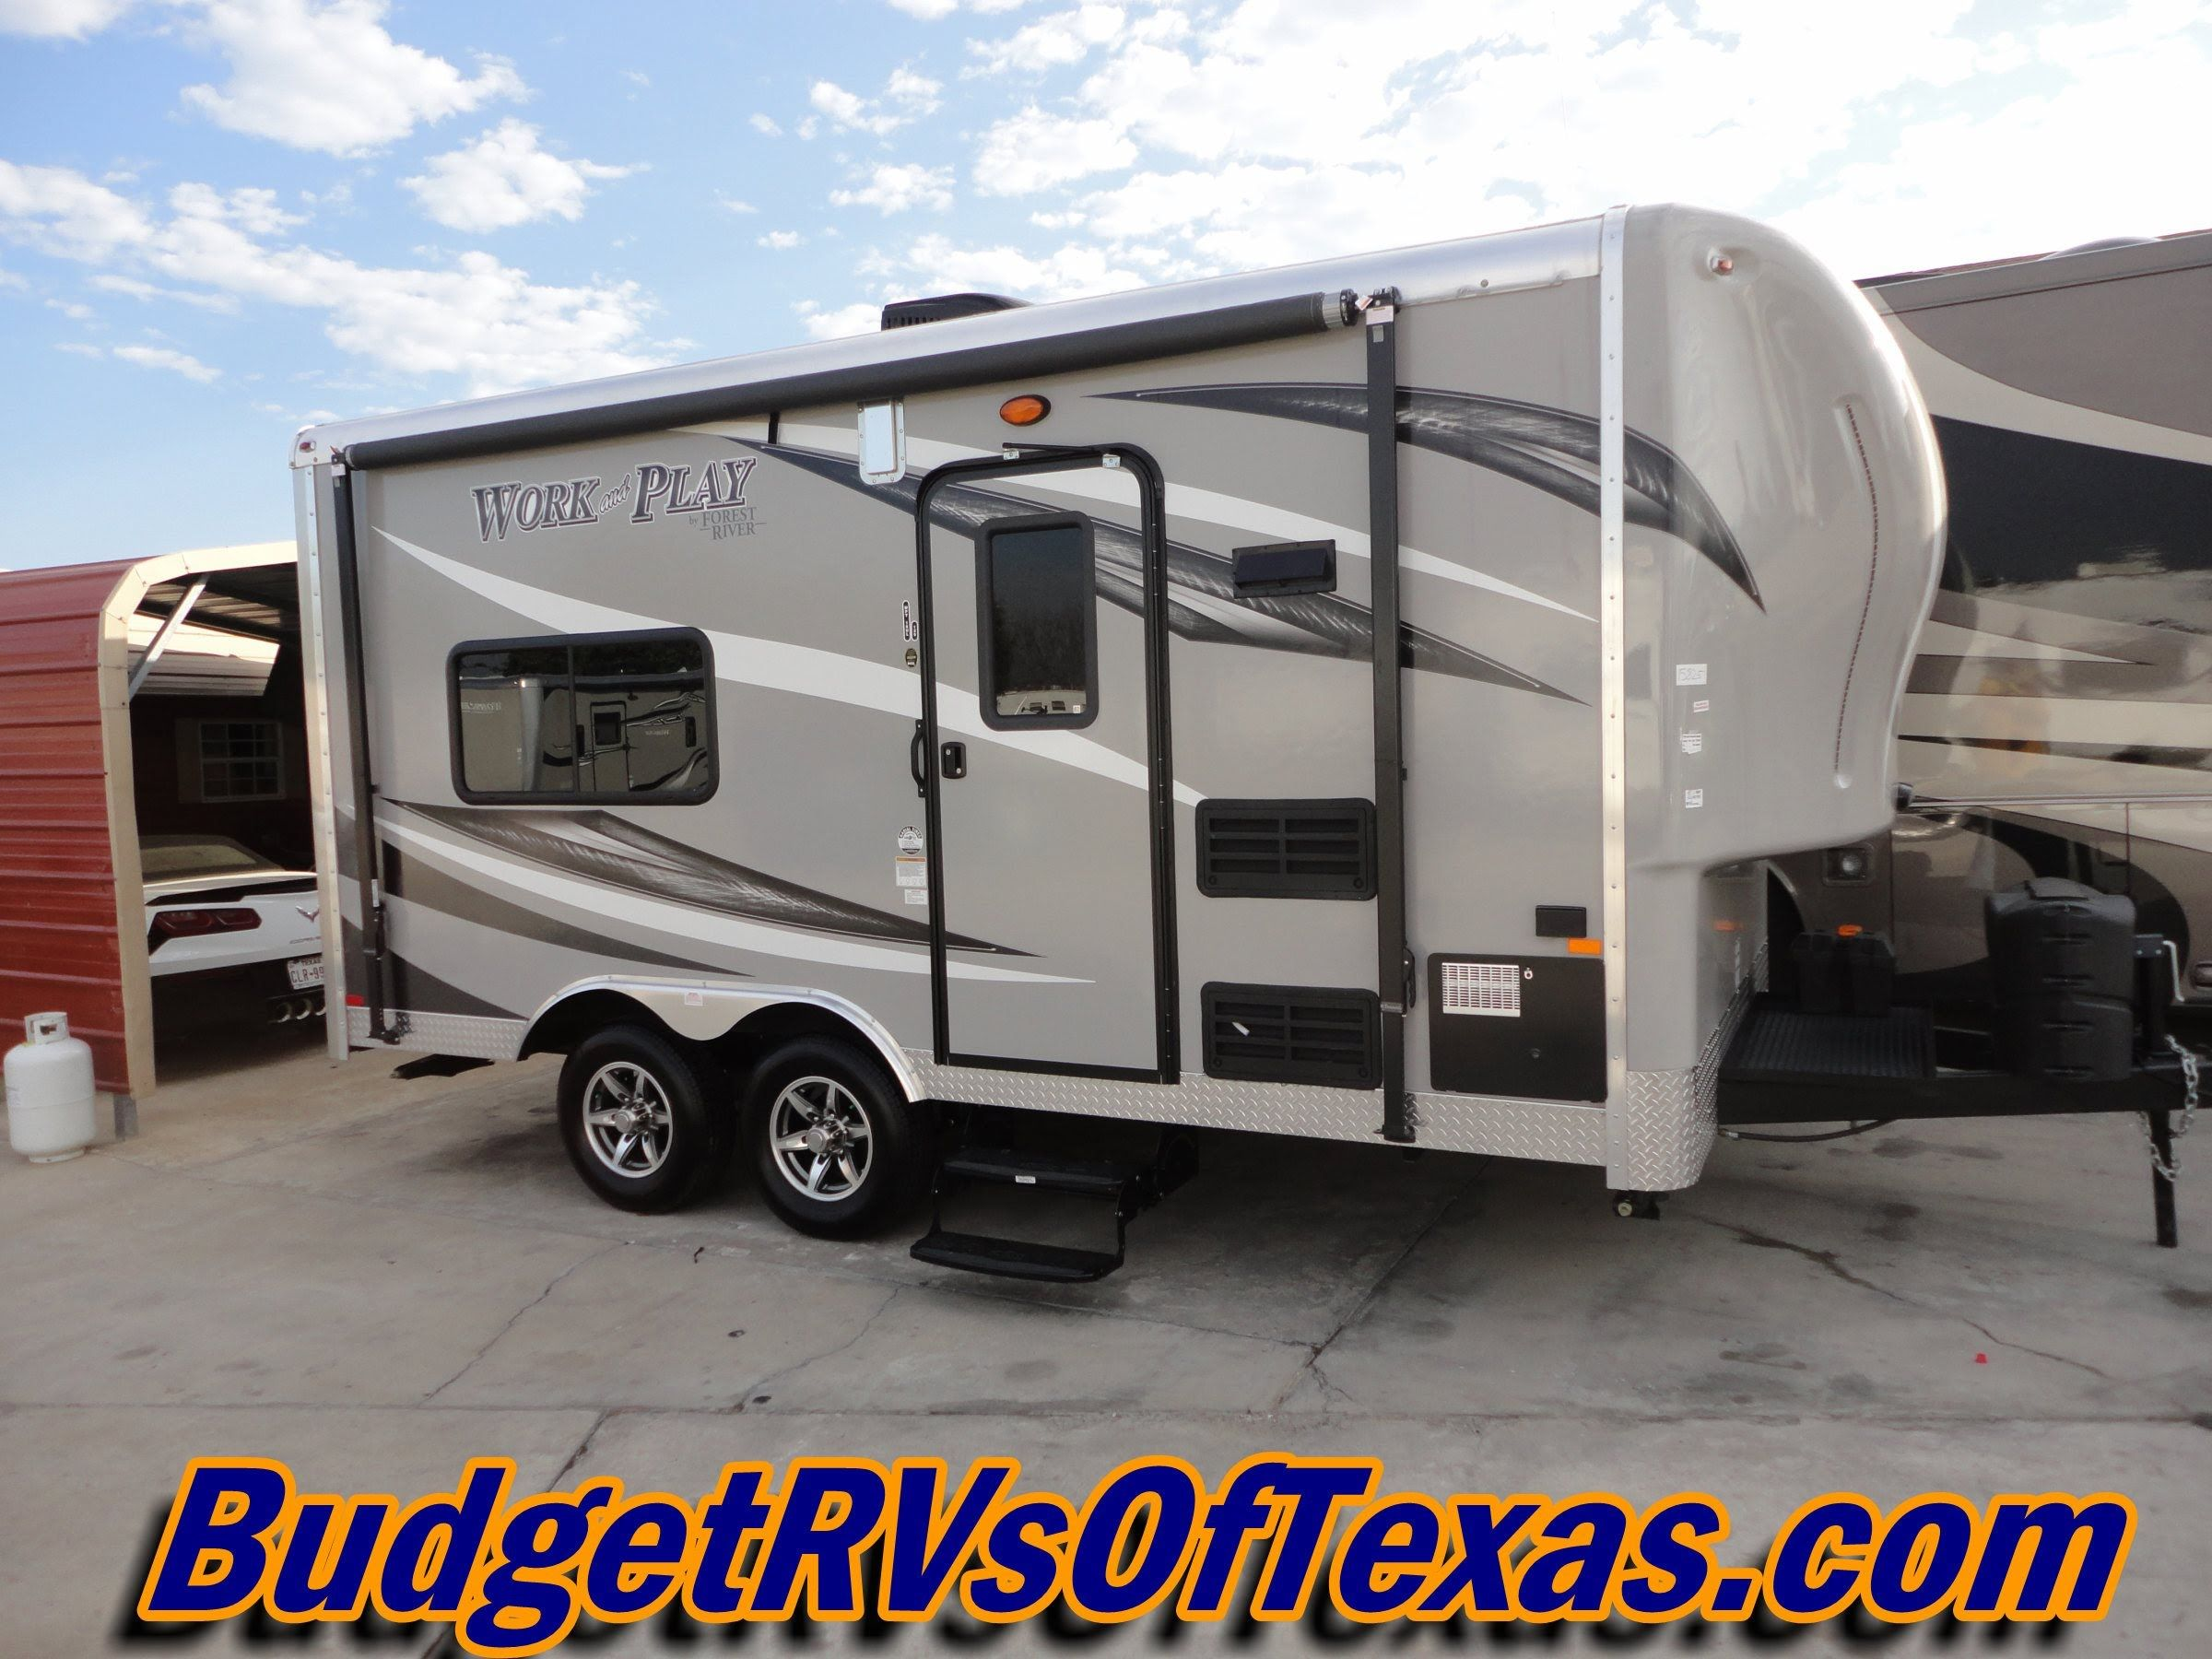 Half Ton Tow 15ft Self Contained Work And Play Toy Hauler 2015 WPT